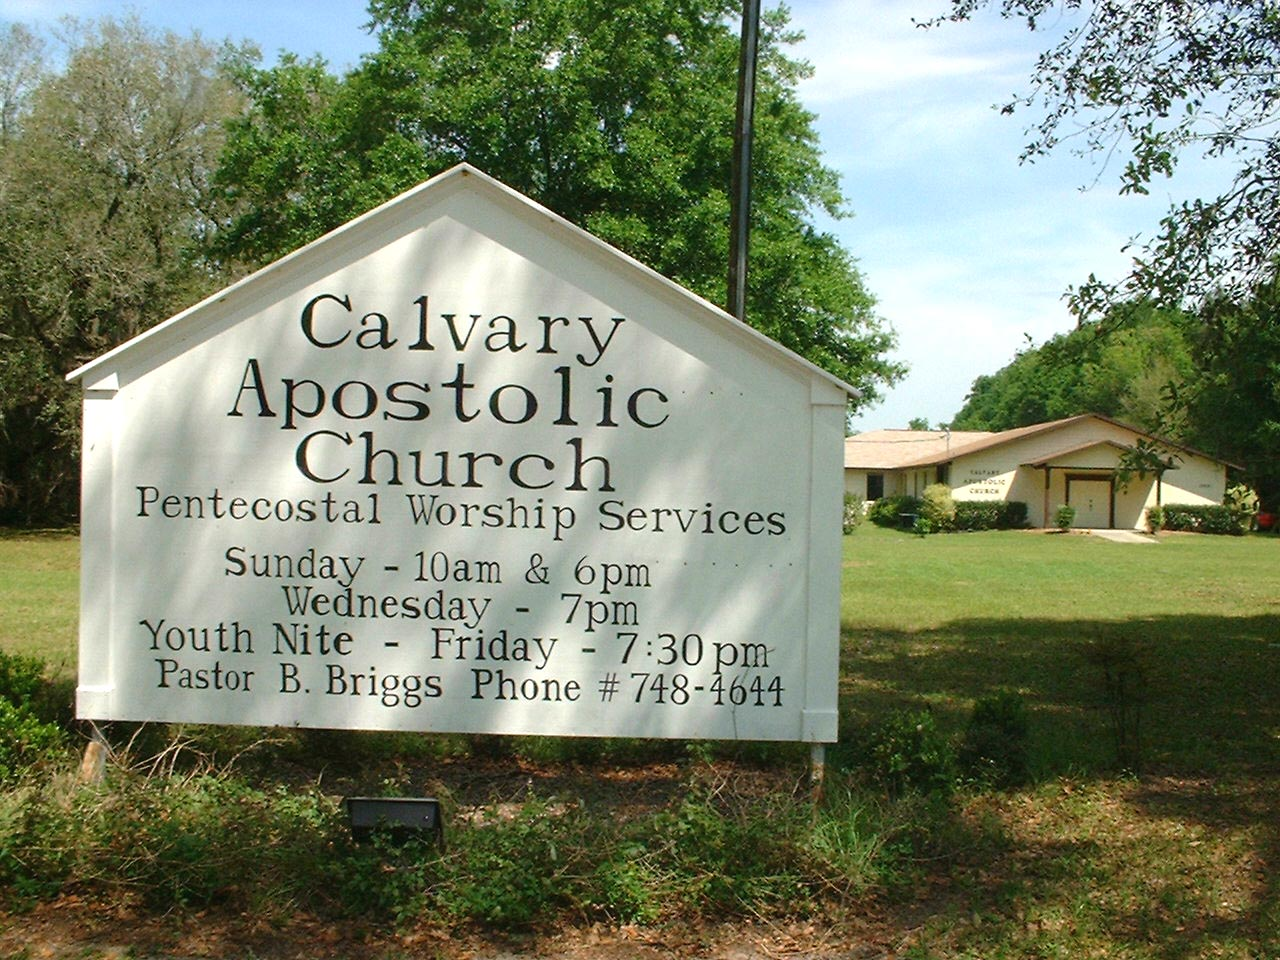 LINK to Calvary Apostolic Church - CLICK IT! --------------- GO ahead and try it! ---- you'll like it!